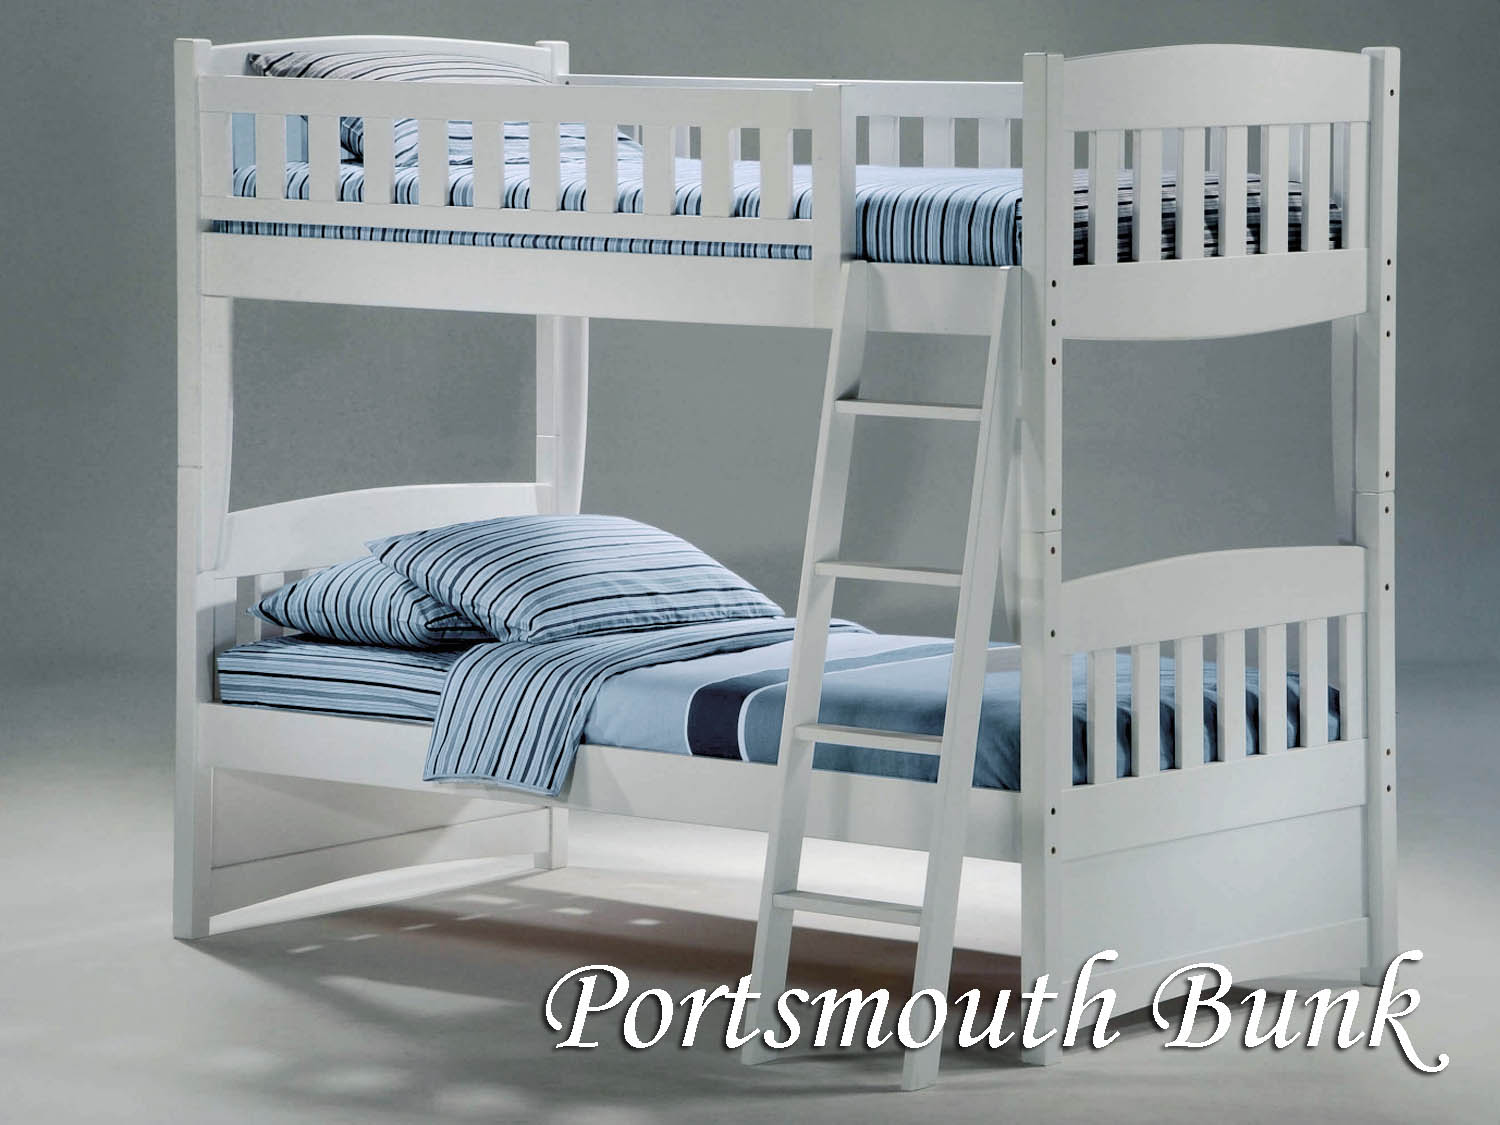 Barbo's Furniture, Portsmouth Bunk, Bed, Bedroom, Kids, Guest, Cape Cod, Coastal, Seaside, Casual, Cottage, Painted, White, twin